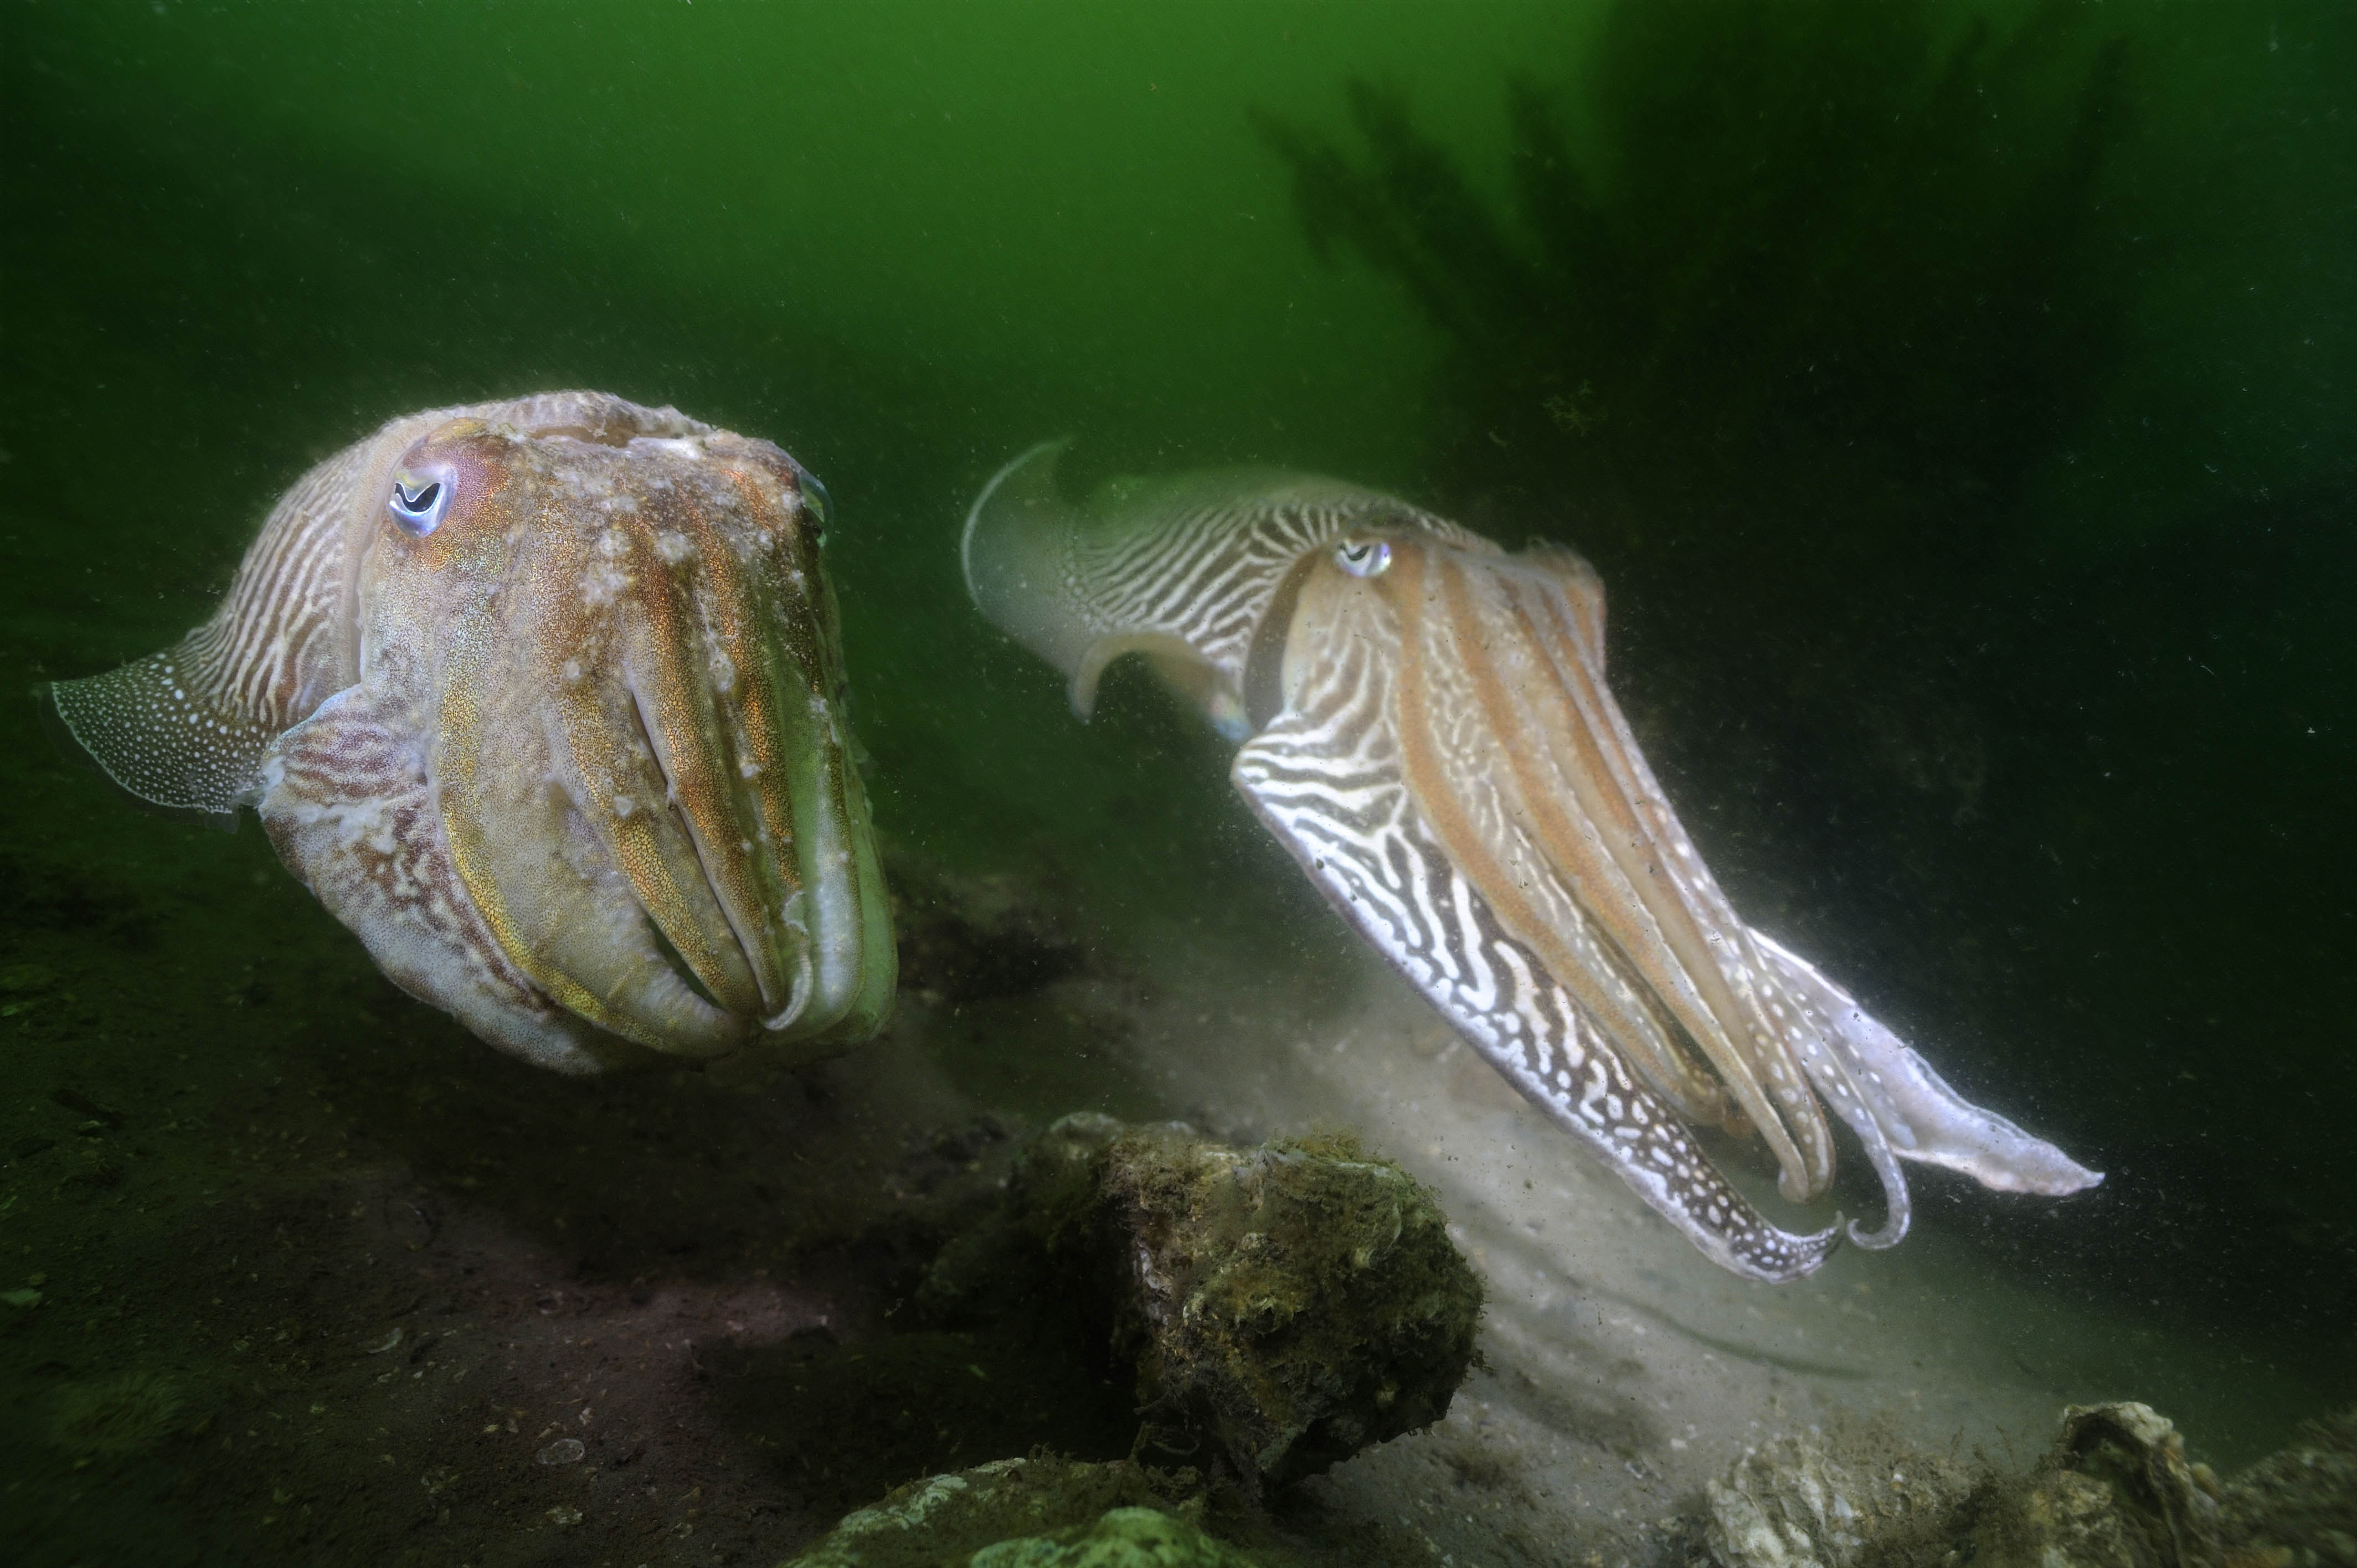 Sepia's zwemmen in het voorjaar de Oosterschelde in om zich voort te planten ; Common cuttlefish swimming up the Dutch Oosterschelde to breed.